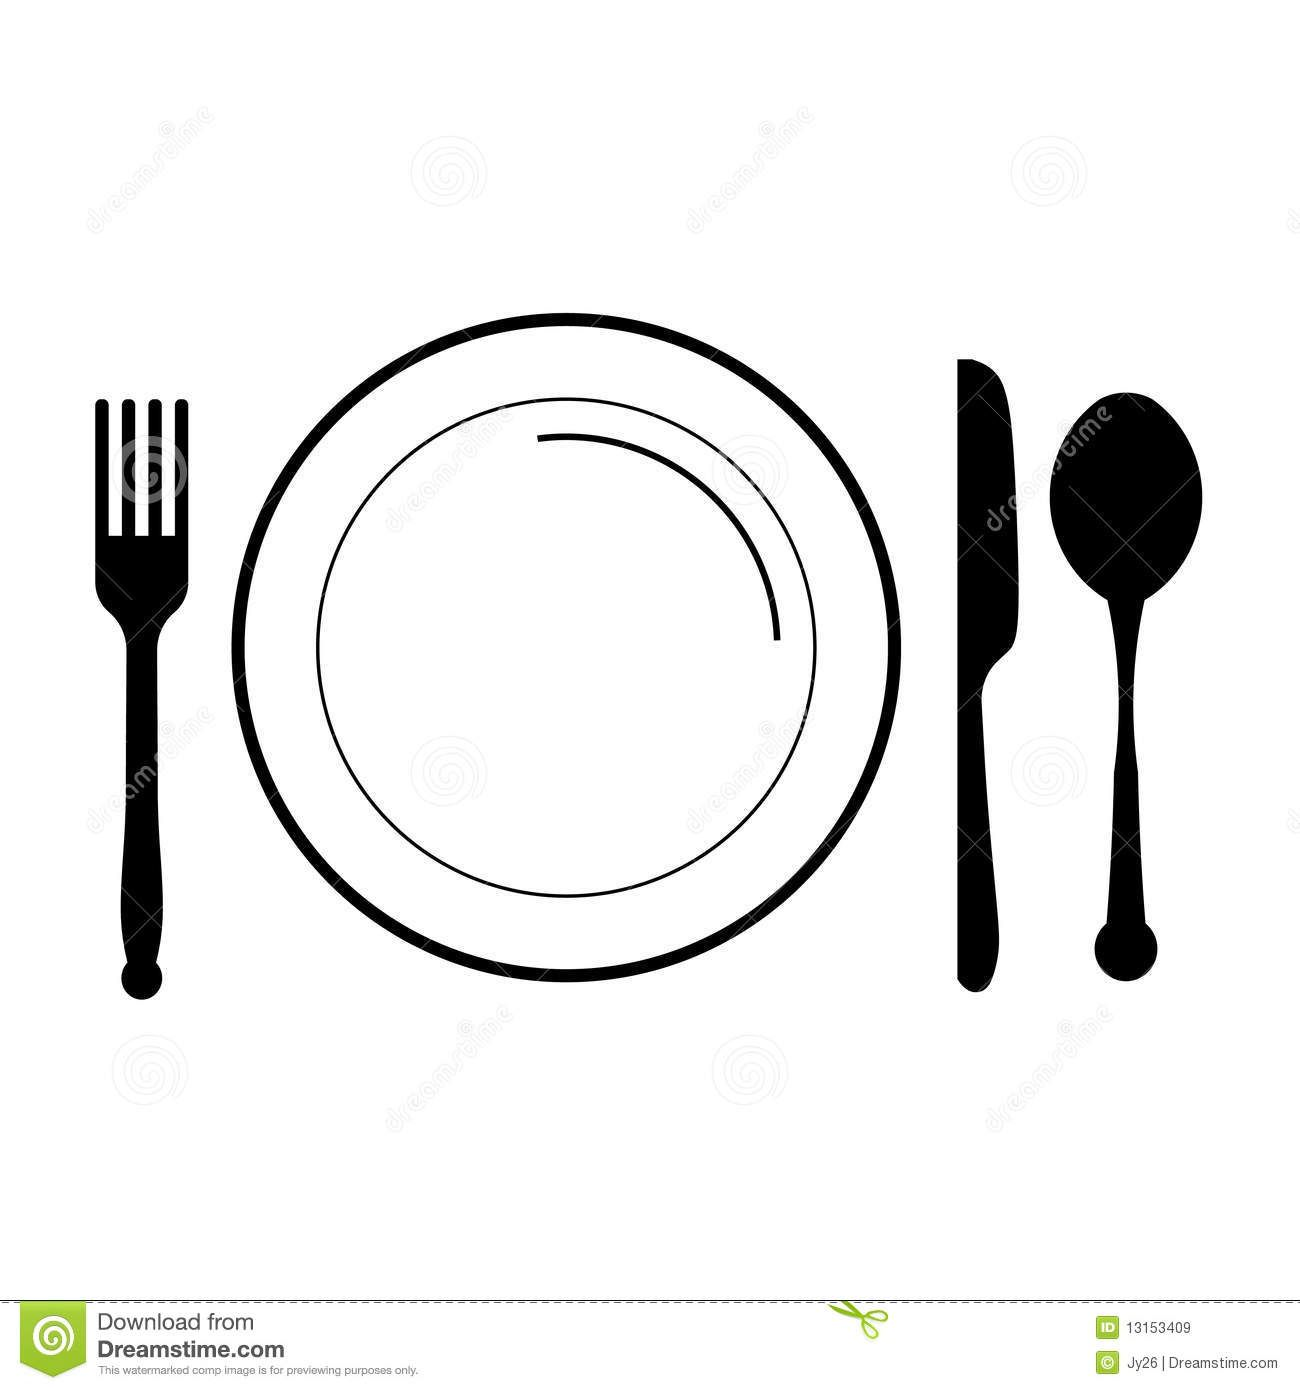 hight resolution of plate fork knife clip art vector icon illustration of plate with fork knife spoon